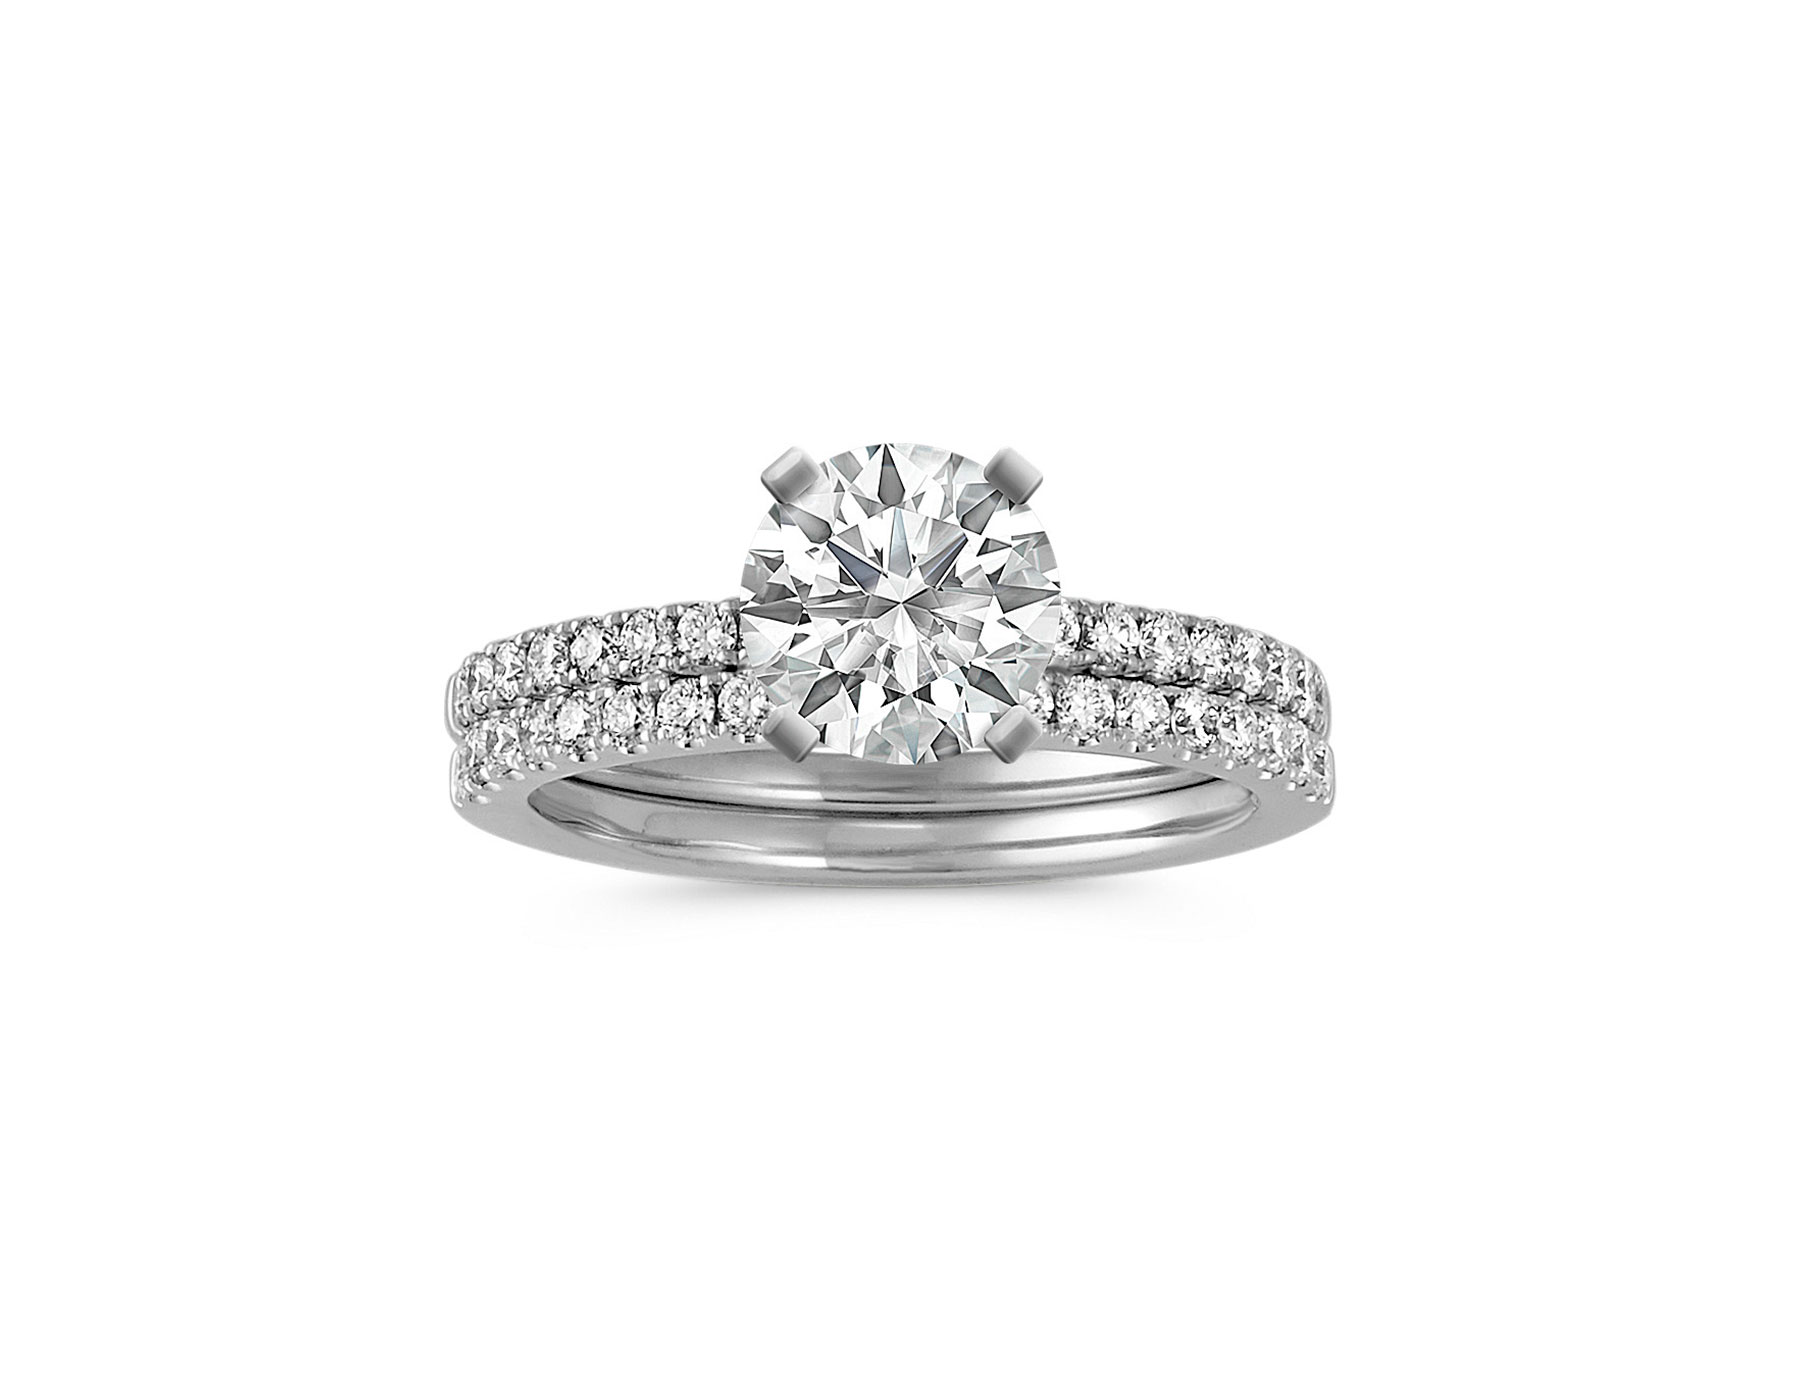 shane co diamond wedding ring set